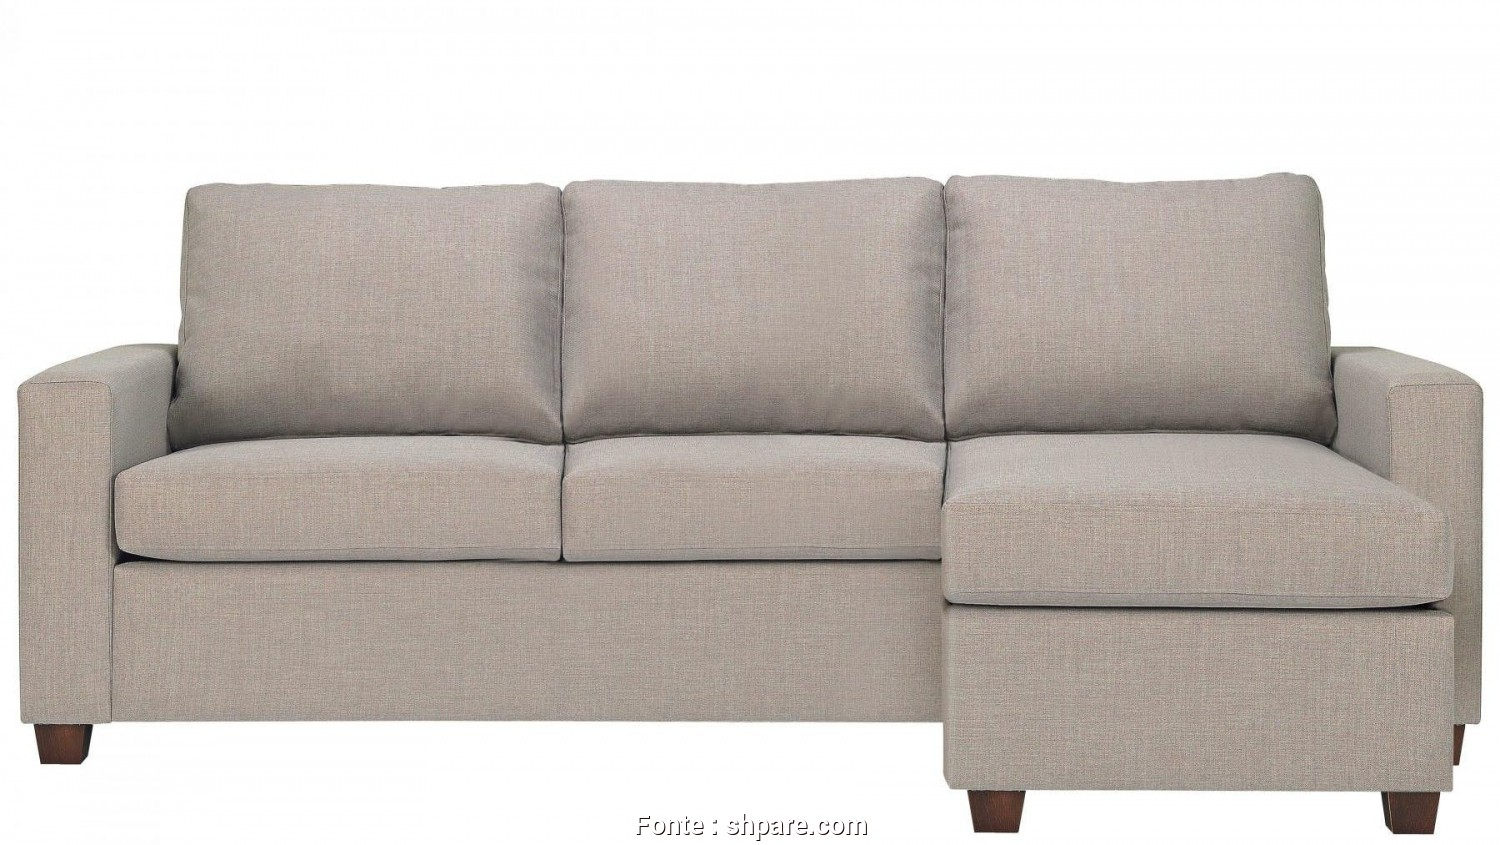 Ikea Backabro Reviews, Locale Chaise Lounge, Best Of Chaise Sofa, Ikea Vilasund, Backabro Review Return Pics